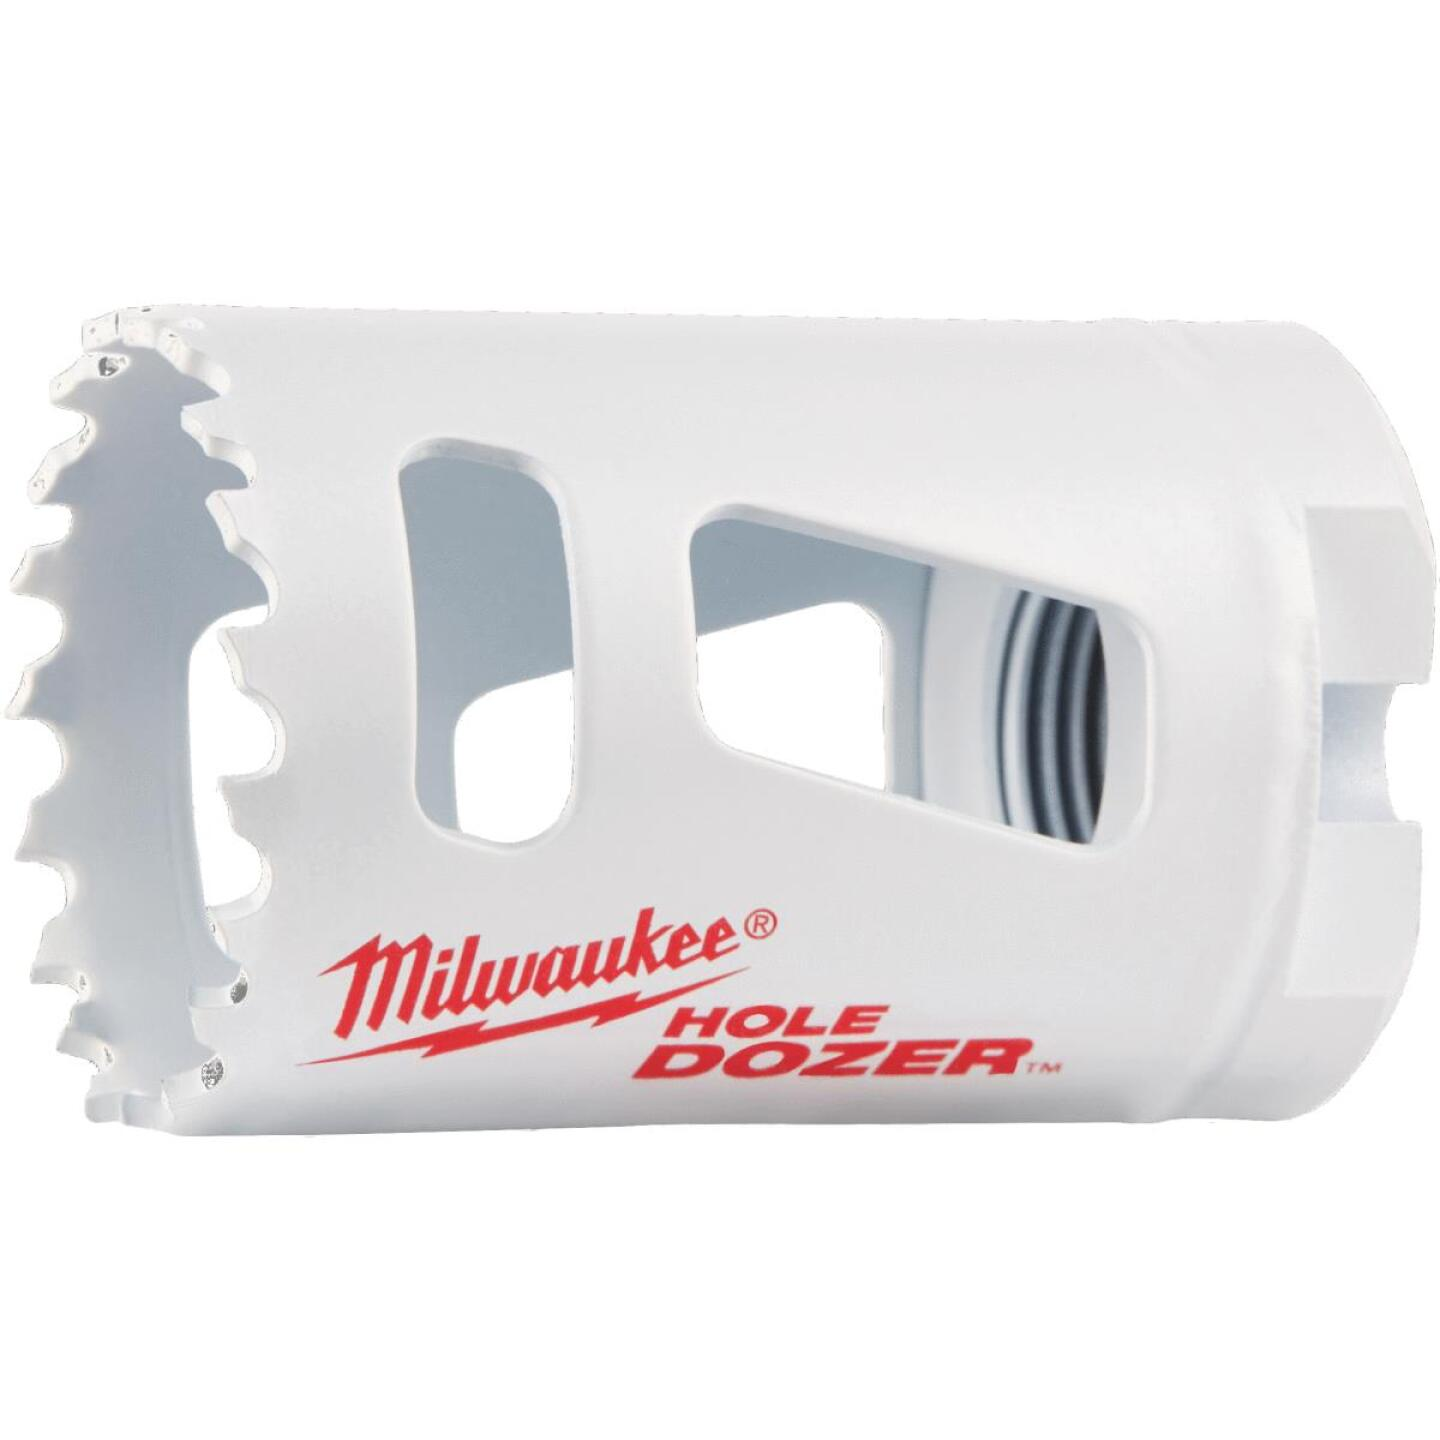 Milwaukee Hole Dozer 5/8 In. Bi-Metal Hole Saw Image 1